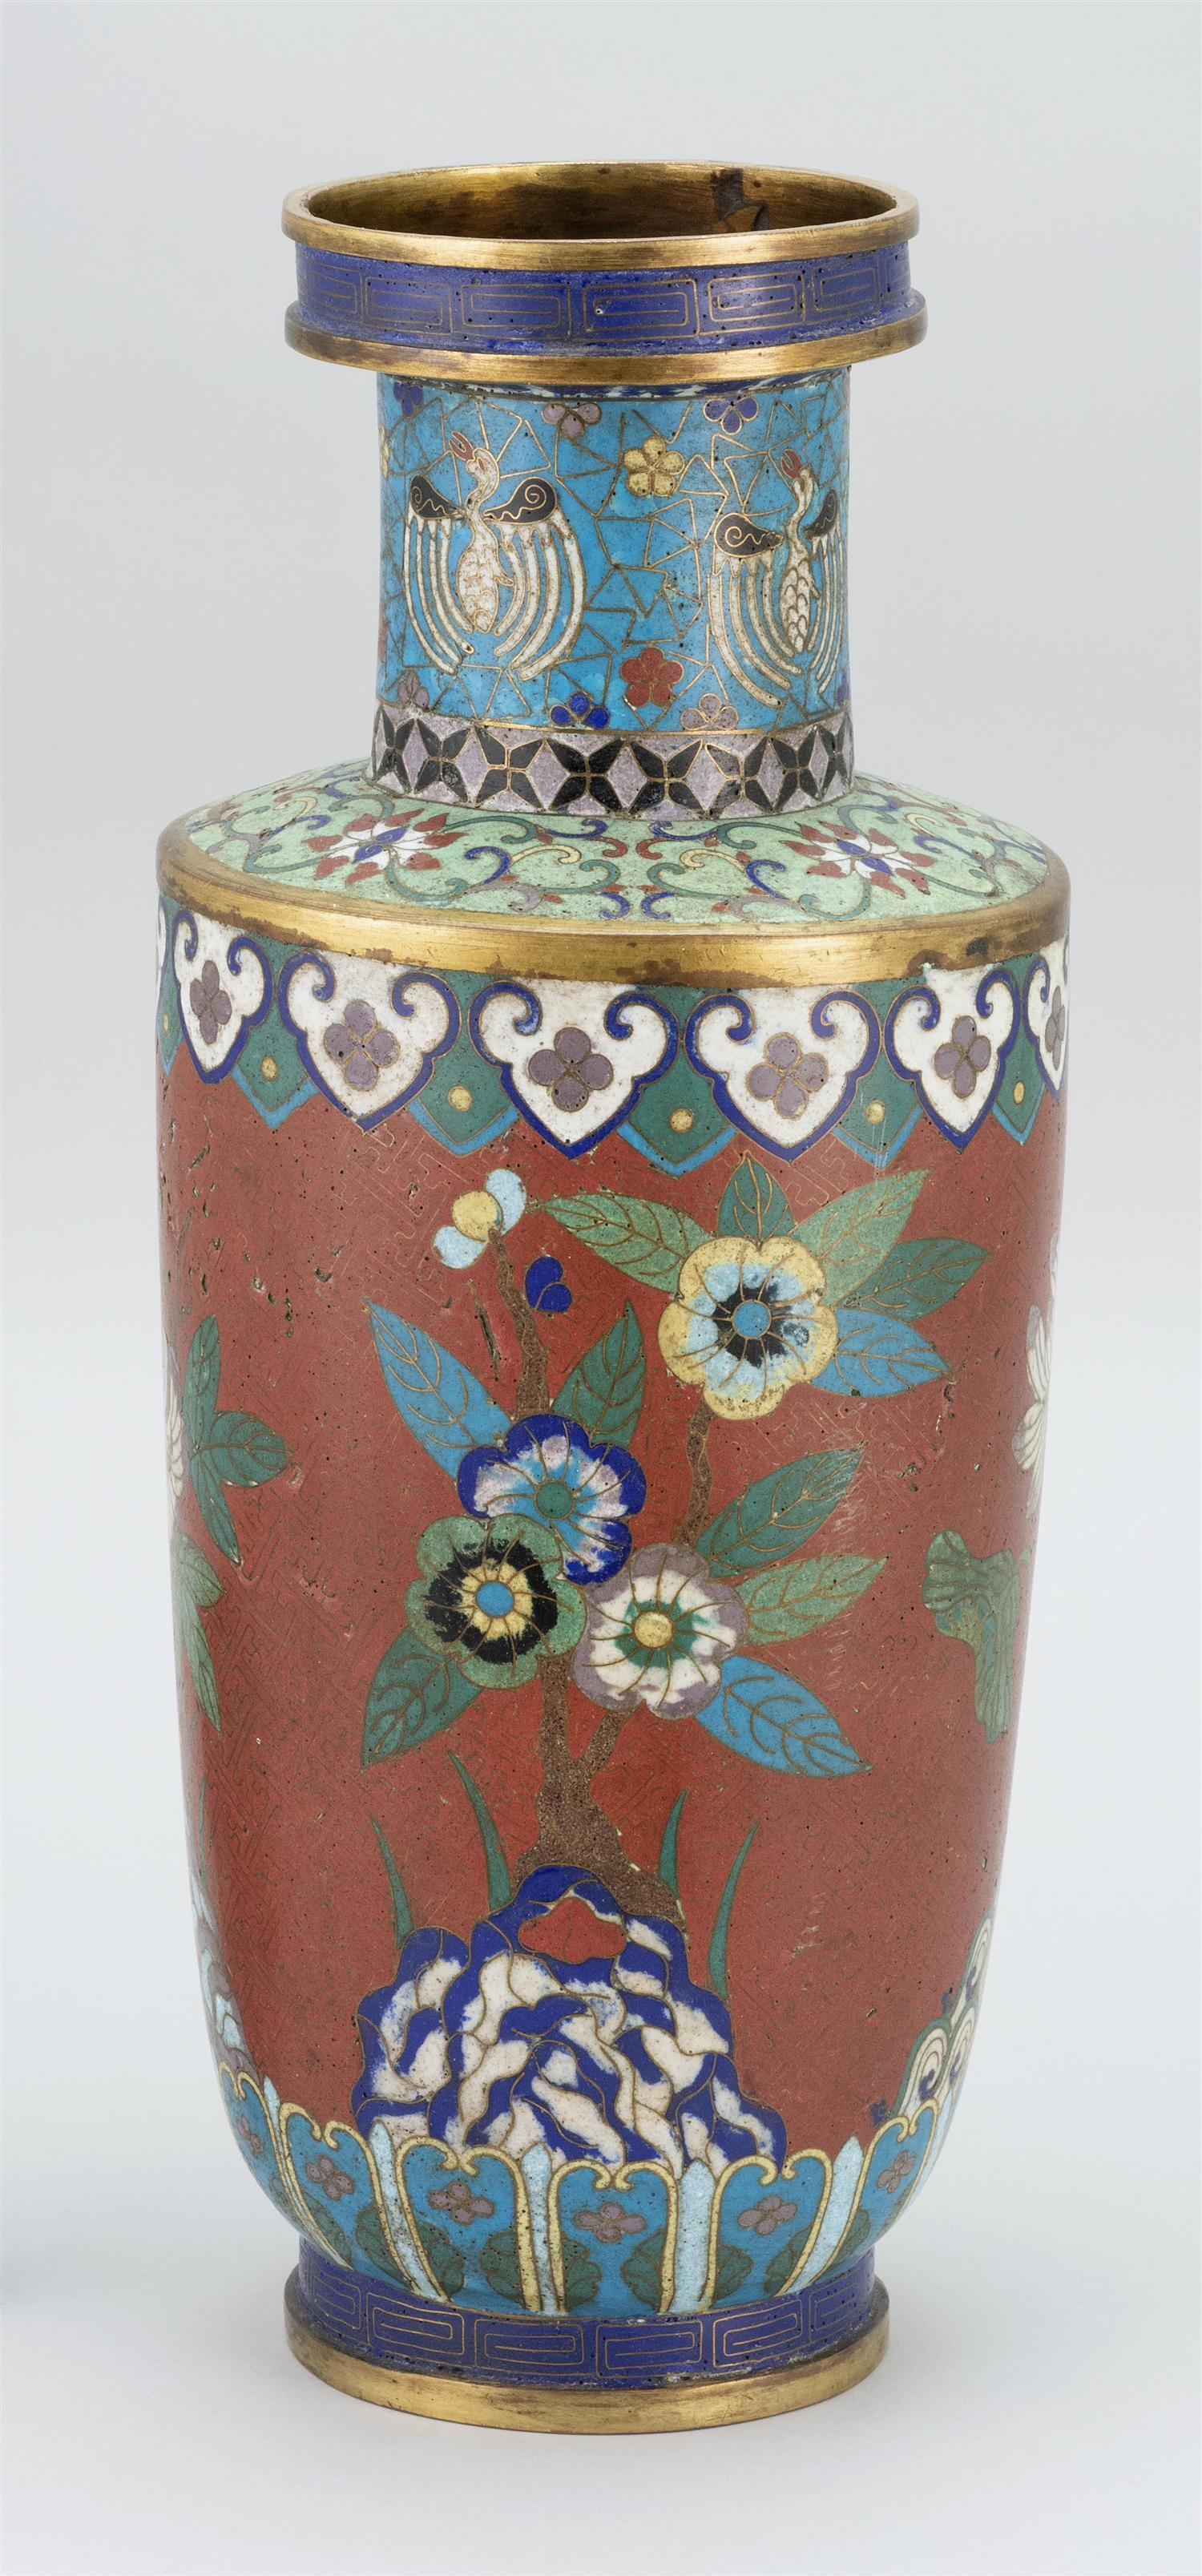 """CHINESE CLOISONNÉ VASE In rouleau form, with stylized cranes at neck and a floral design on a brick red ground. Height 17""""."""